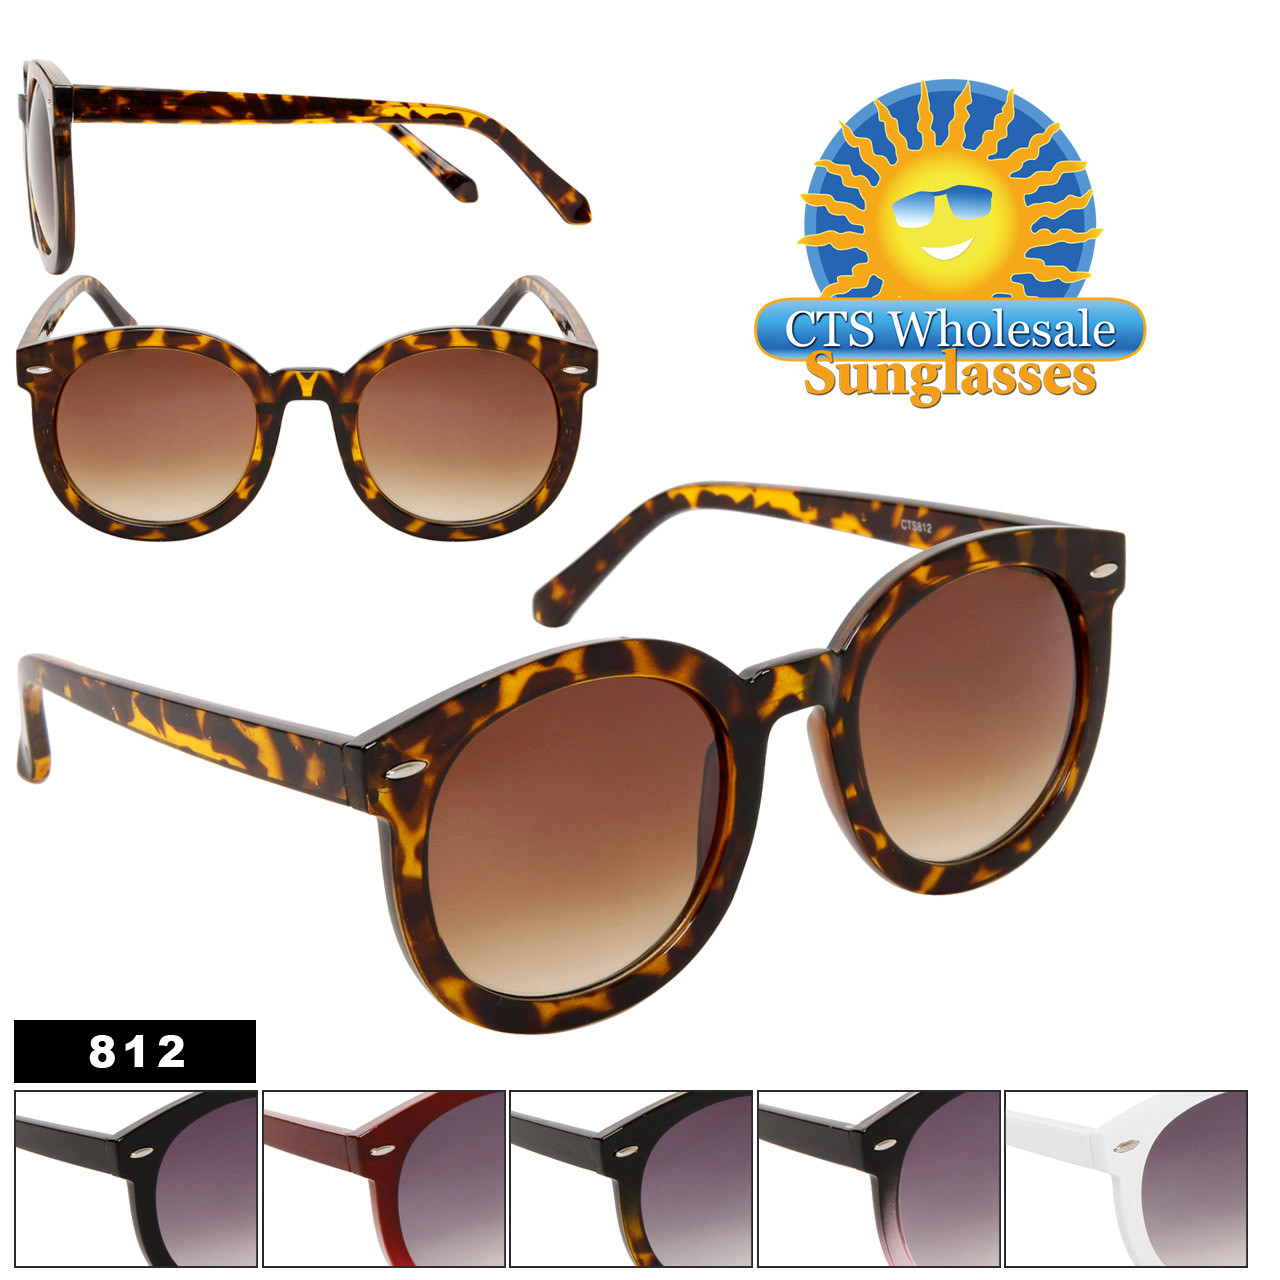 Round Fashion Sunglasses 812